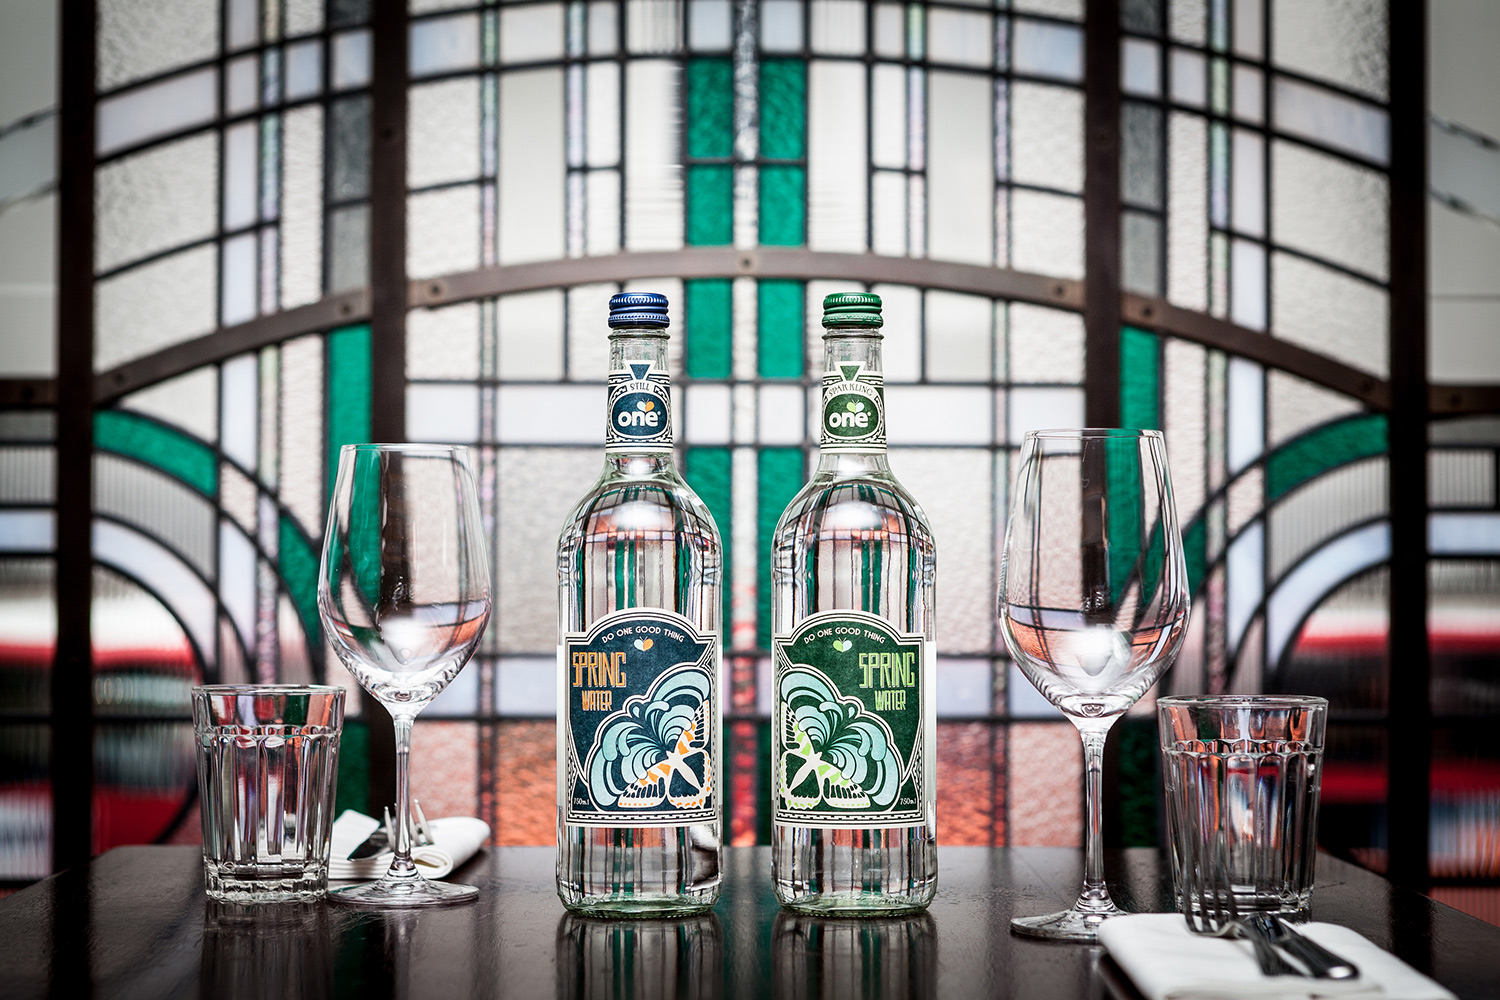 Two glass bottles of One Water in front of an art deco stained glass window on a restaurant table top, designed by SAINT Design.